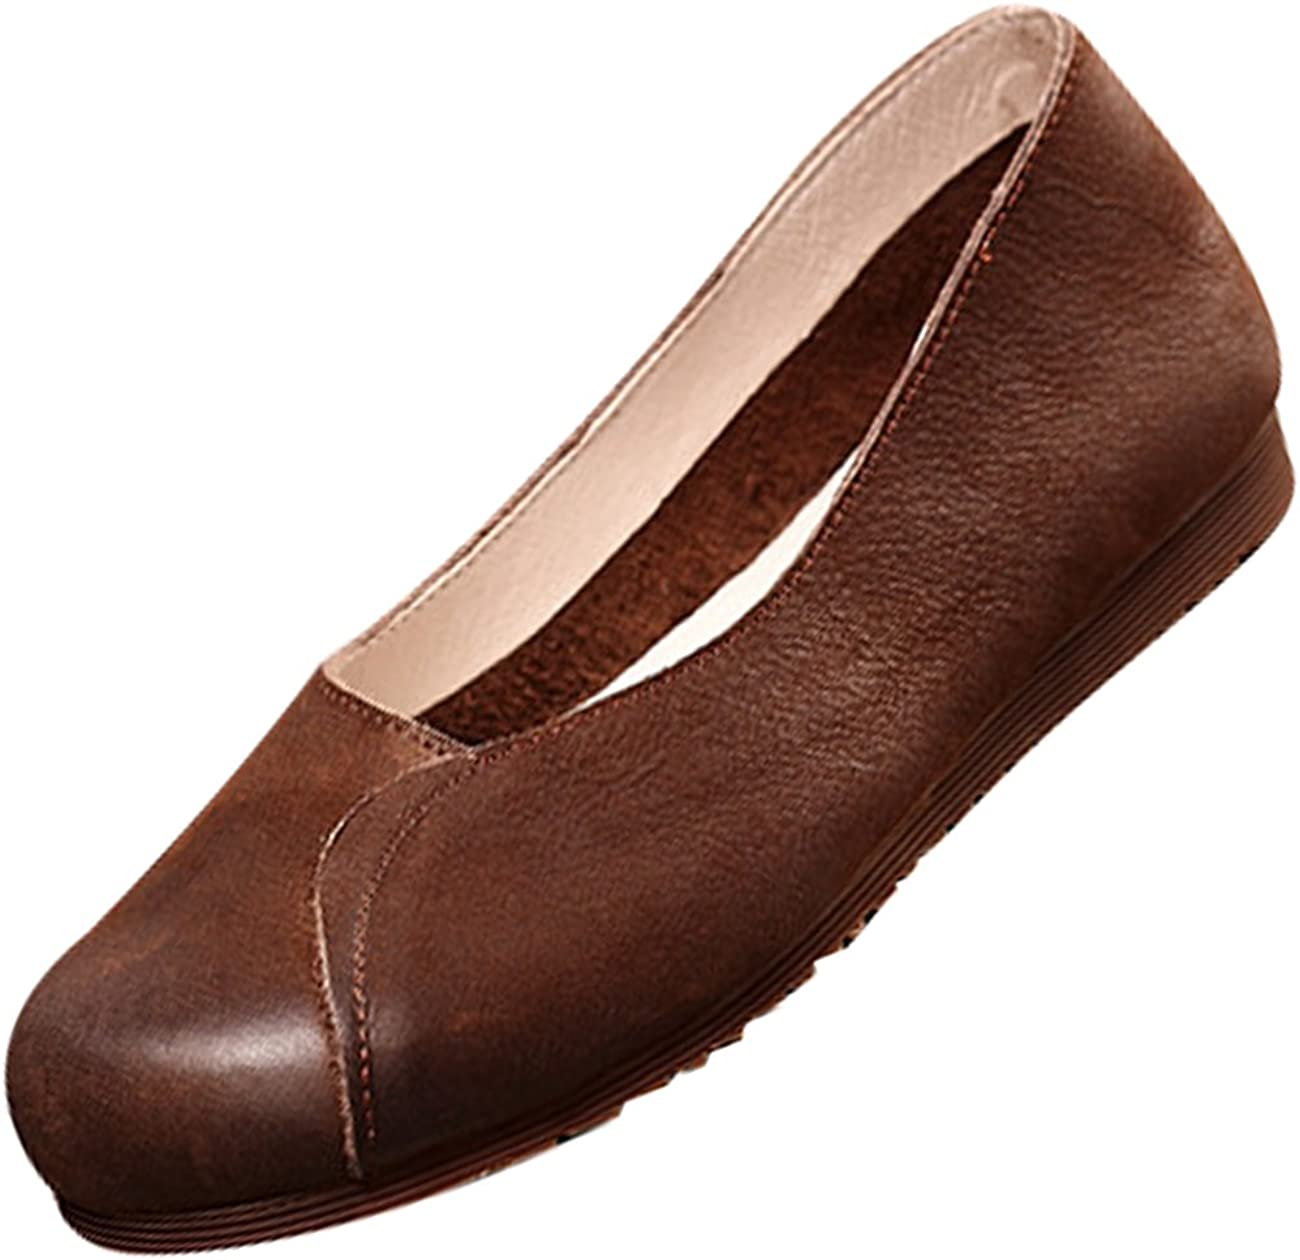 Zoulee Womens New Leather Handmade Flats Shoes Exquisite Suture Ballet Flat Shoes